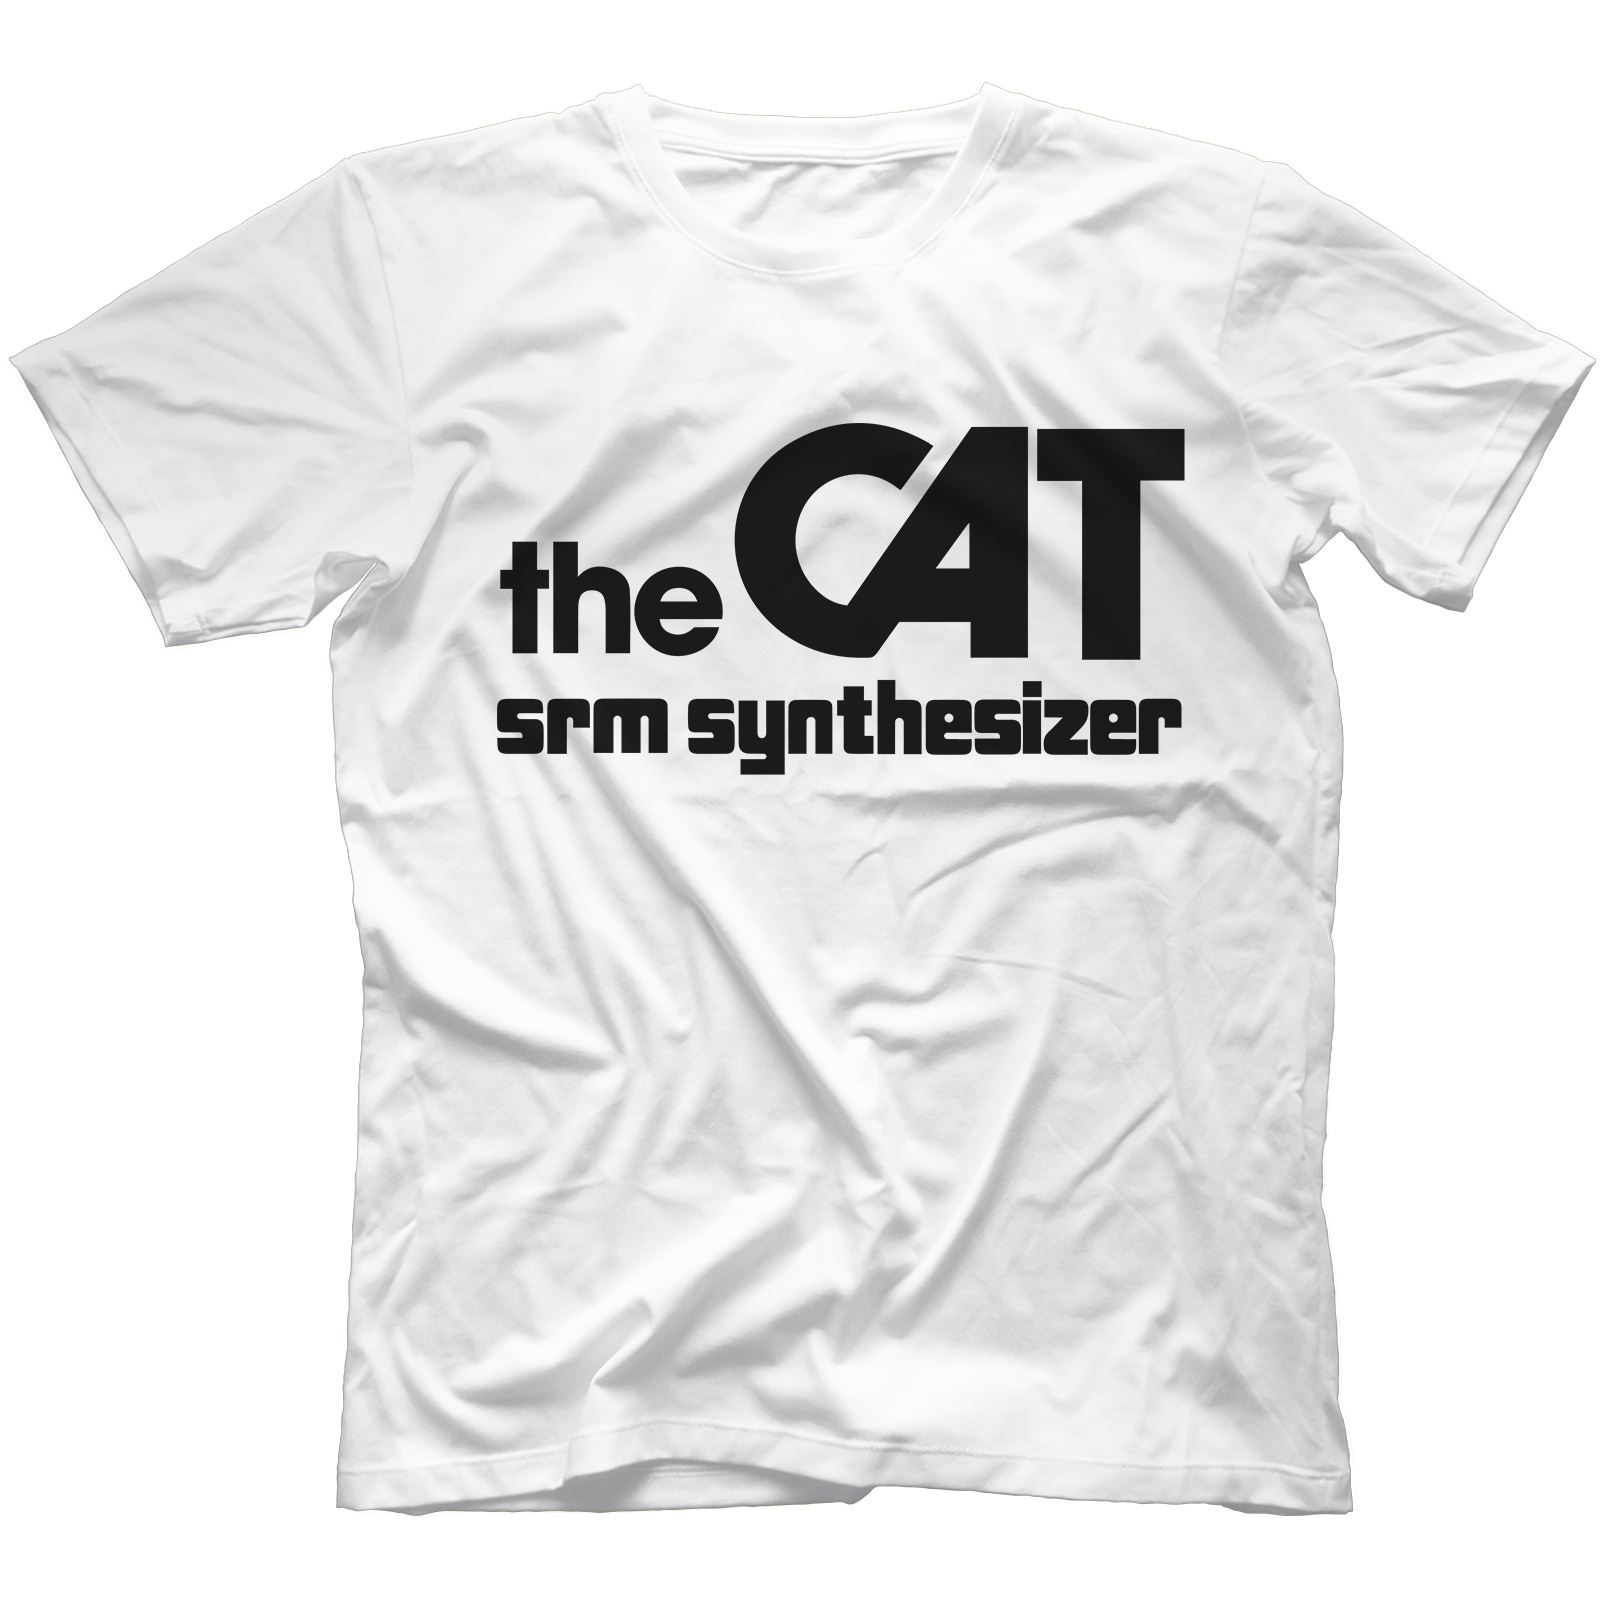 The-Cat-SRM-Synthesiser-T-Shirt-100-Cotton-Retro-Analog-Arp-Odyssey Indexbild 53